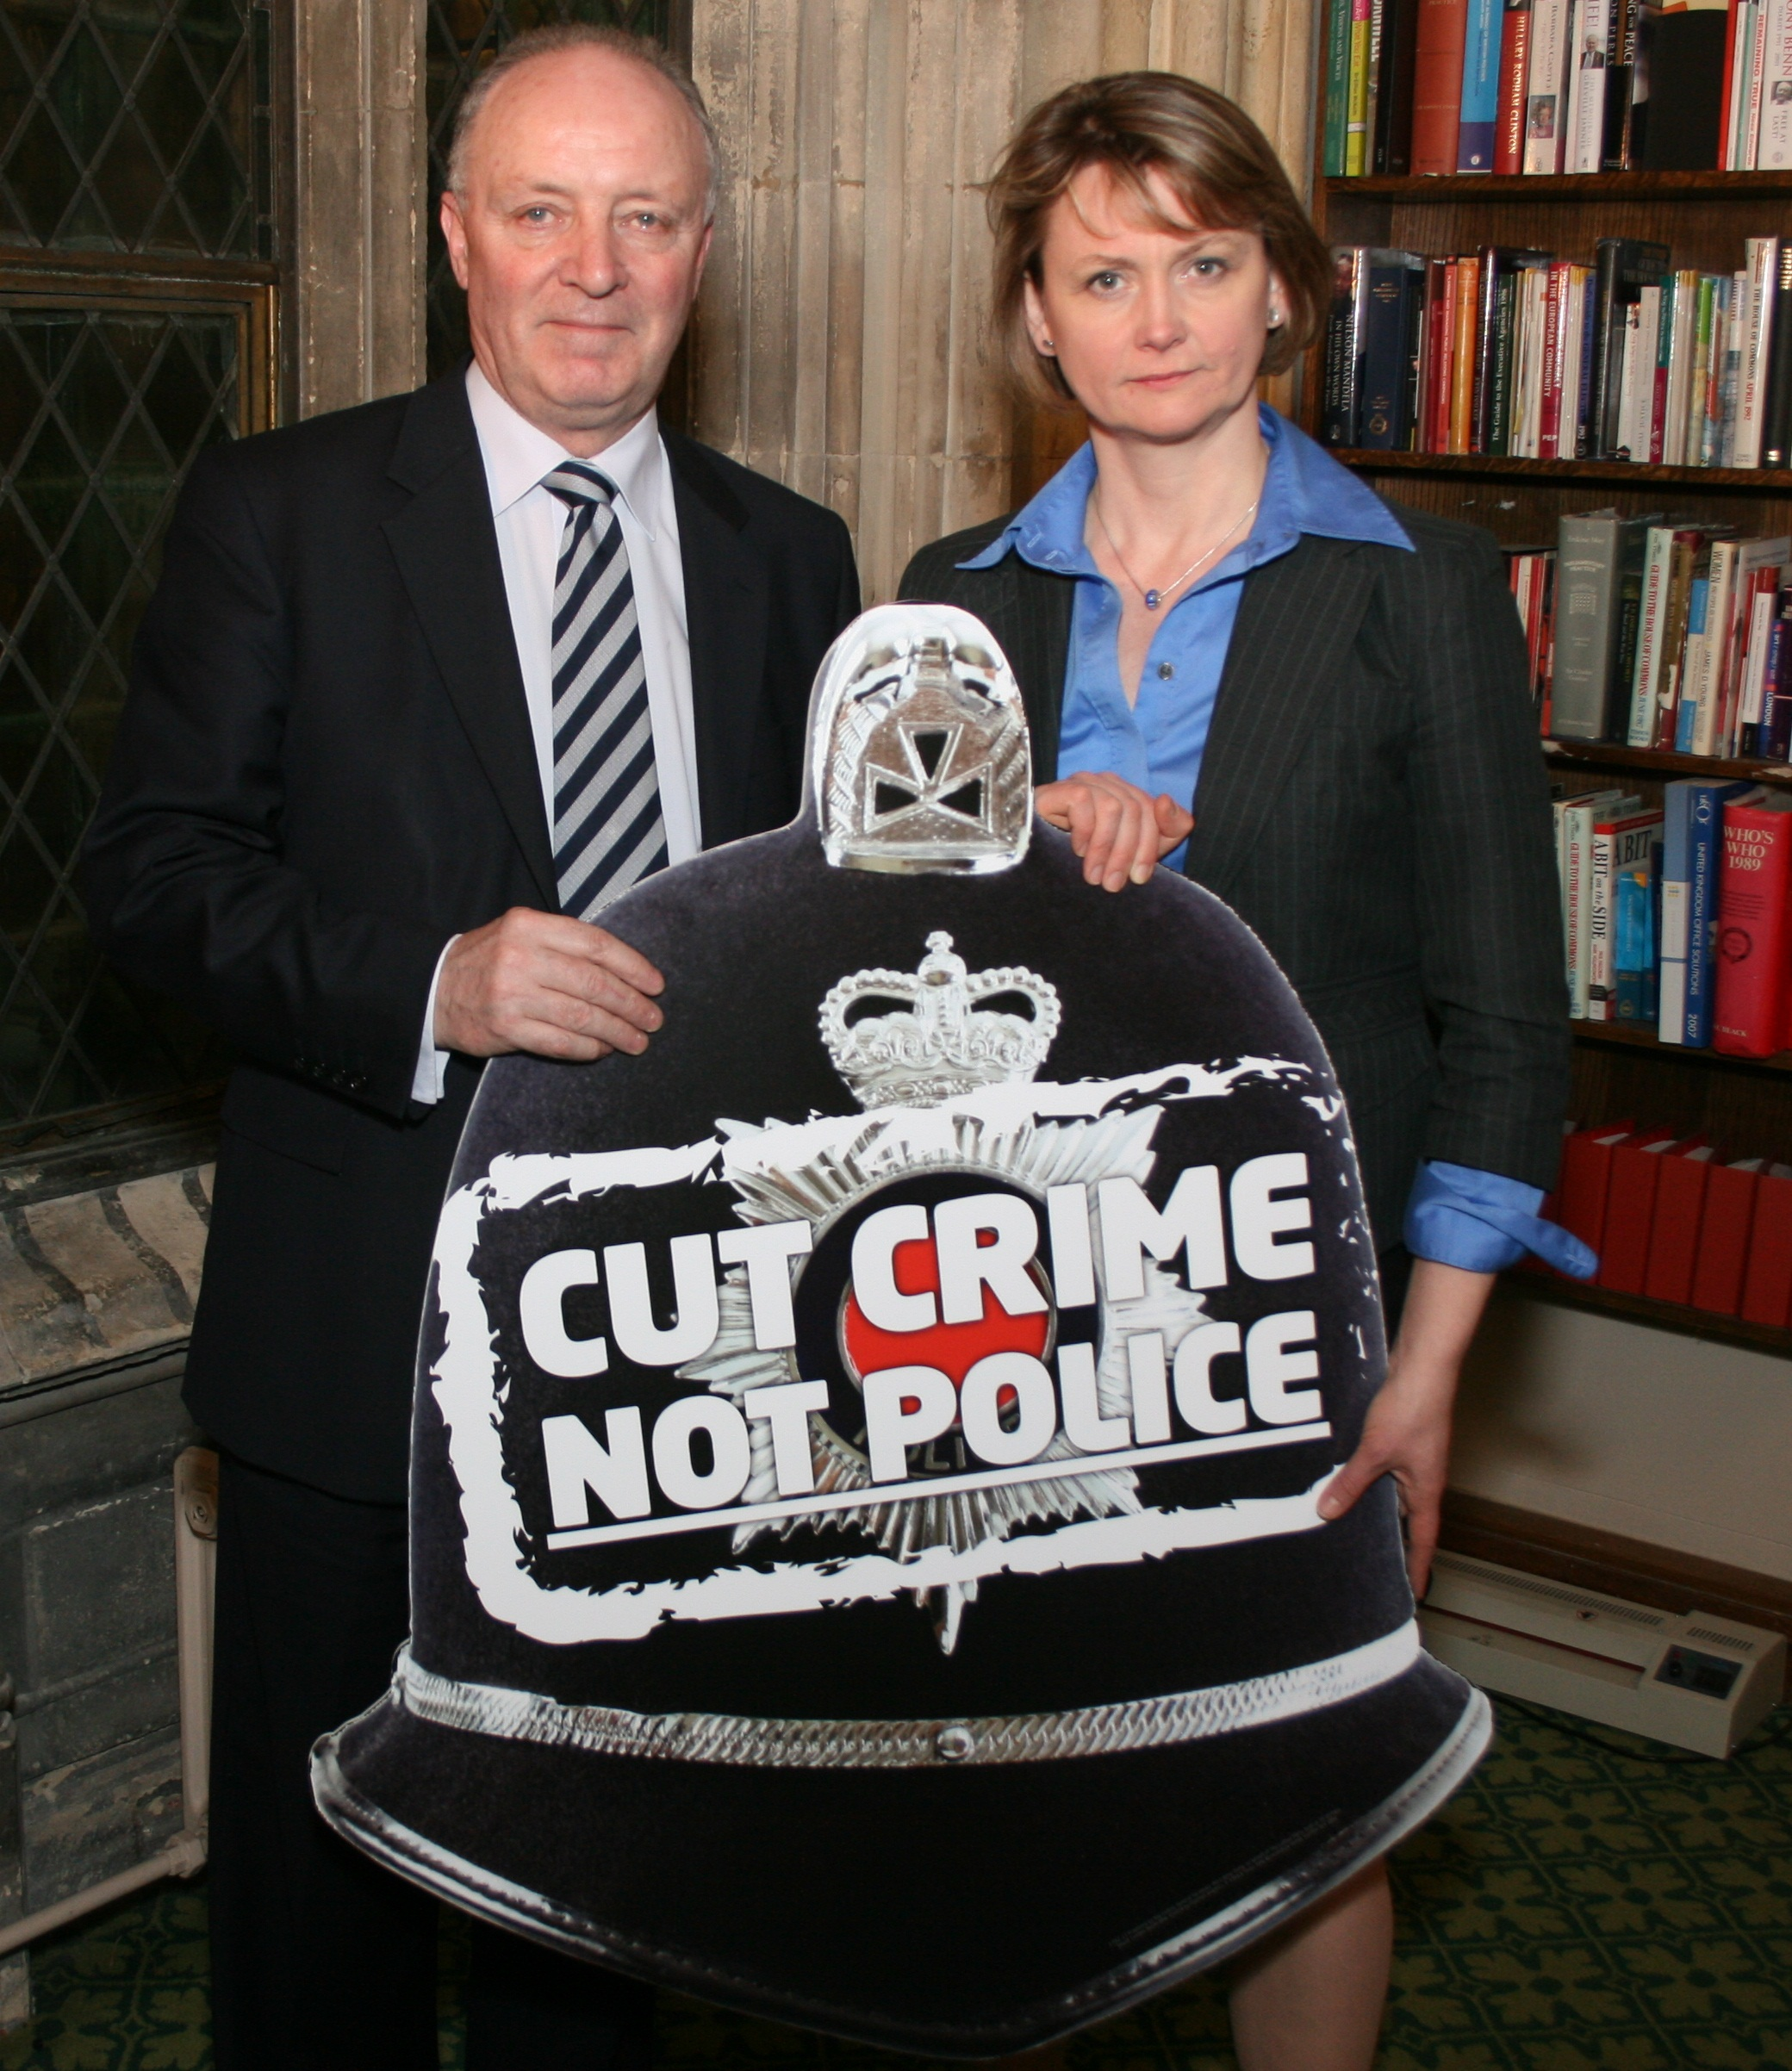 With_Yvette_Cooper_-_police_cuts_-_cropped_.jpg